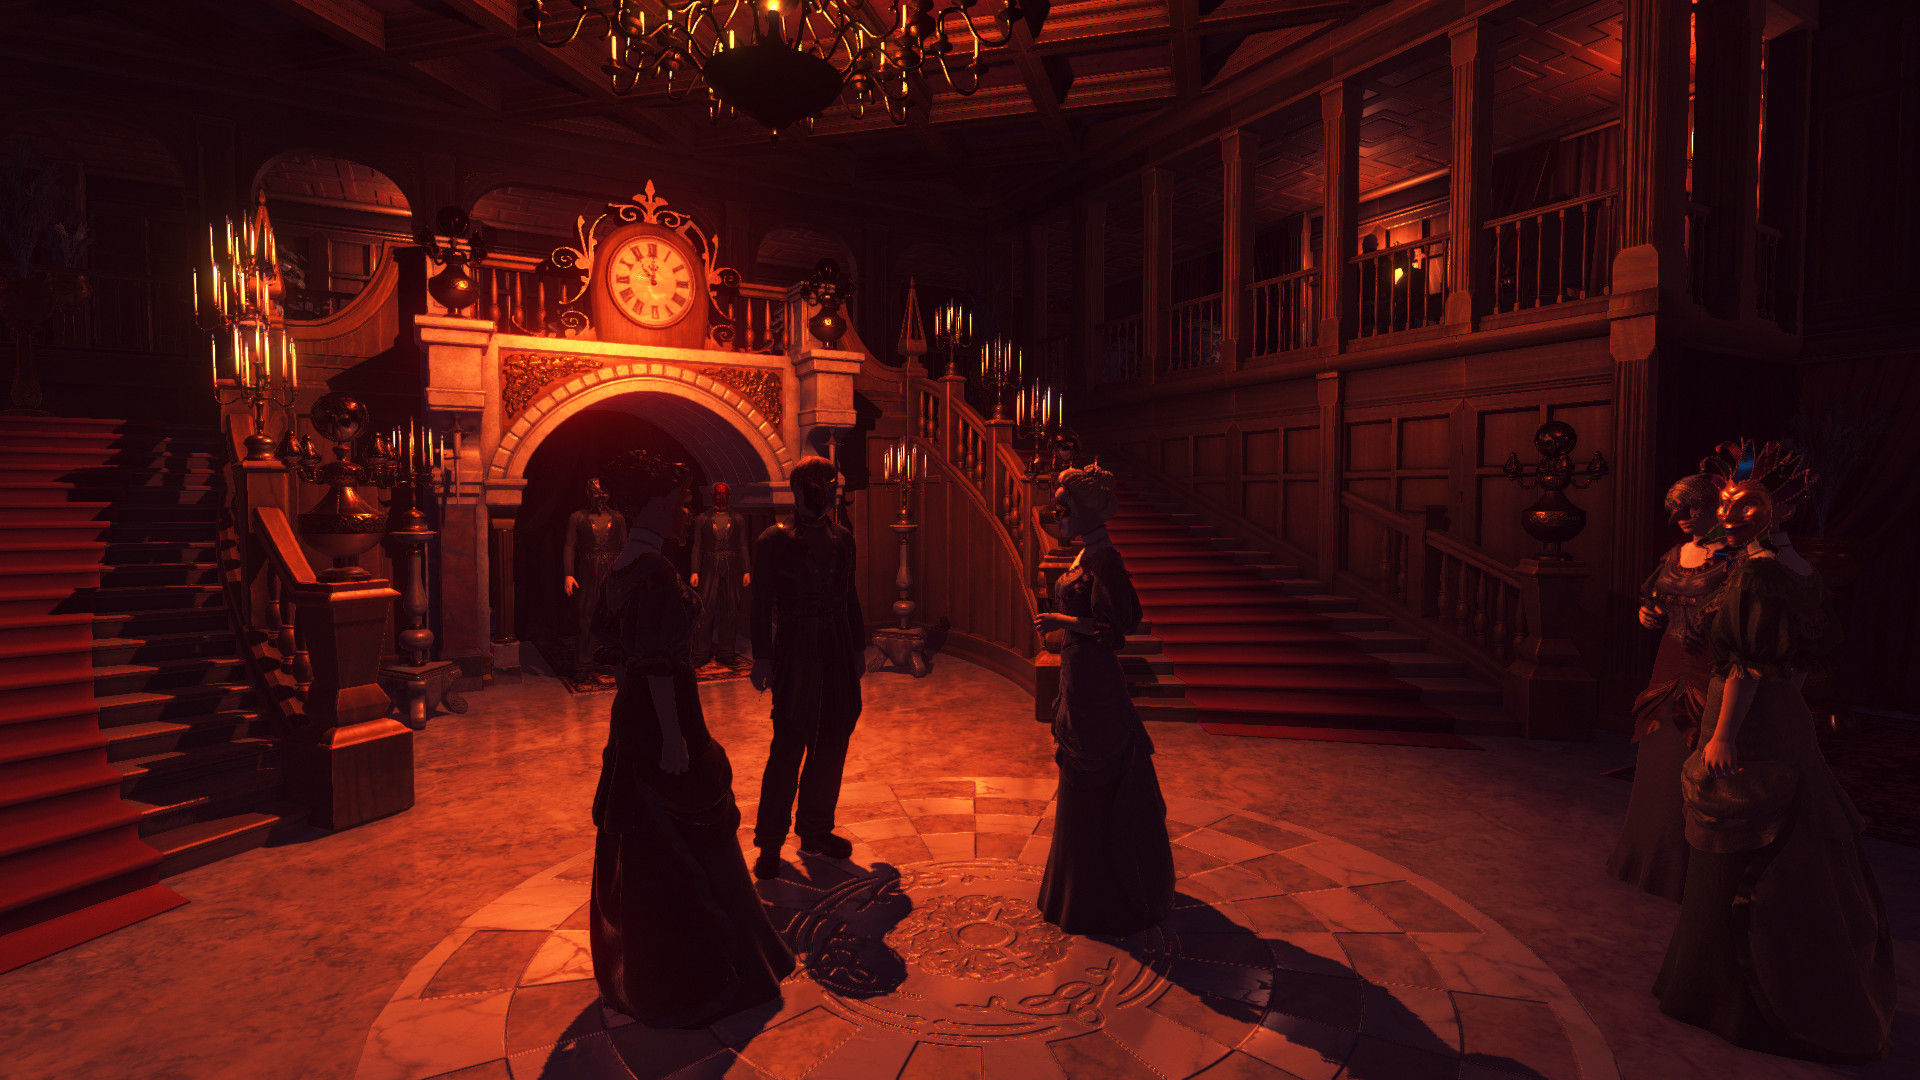 lust-for-darkness-steam-pc-games-4